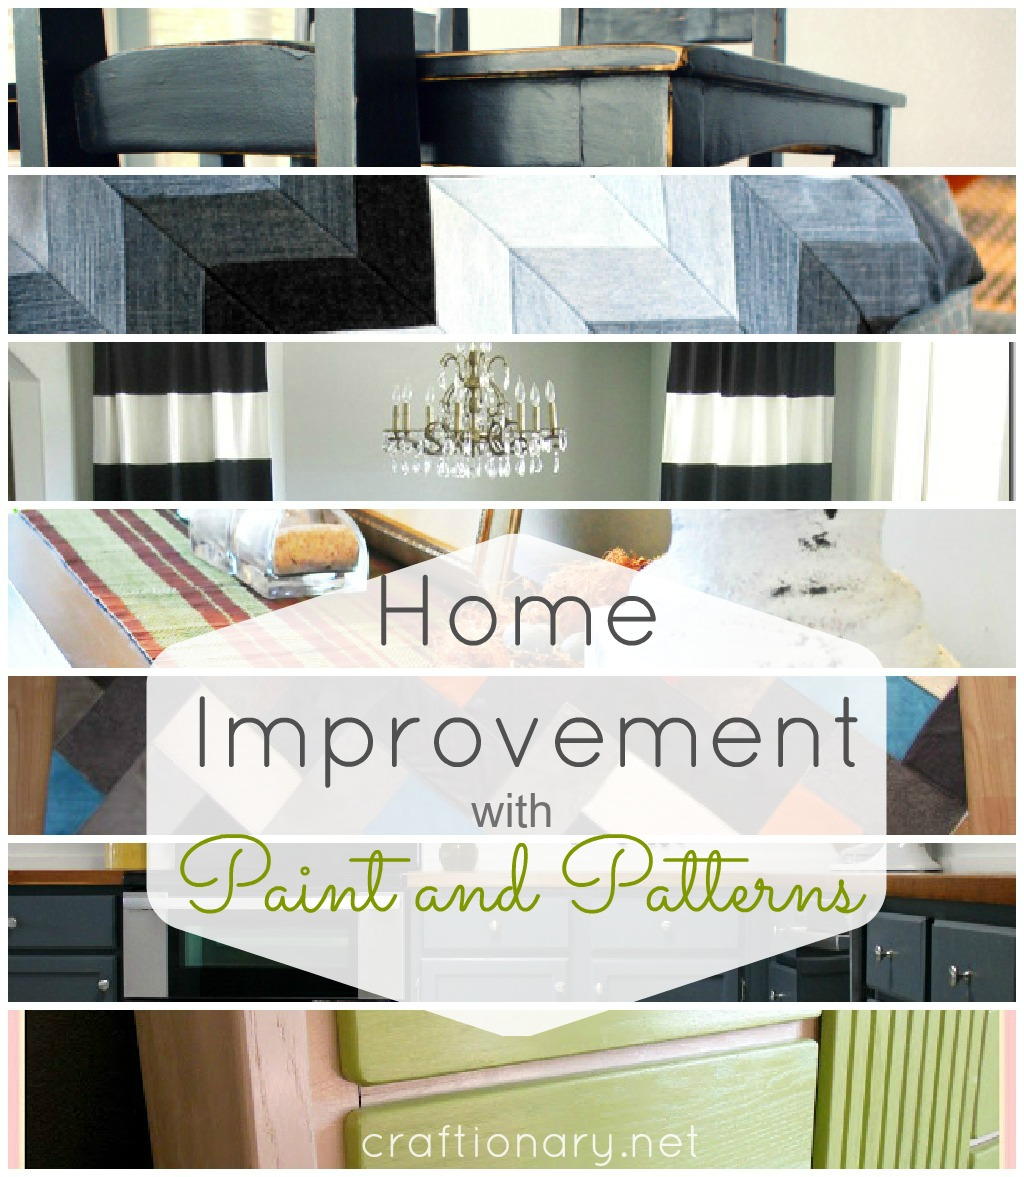 Craftionary Home improvement ideas